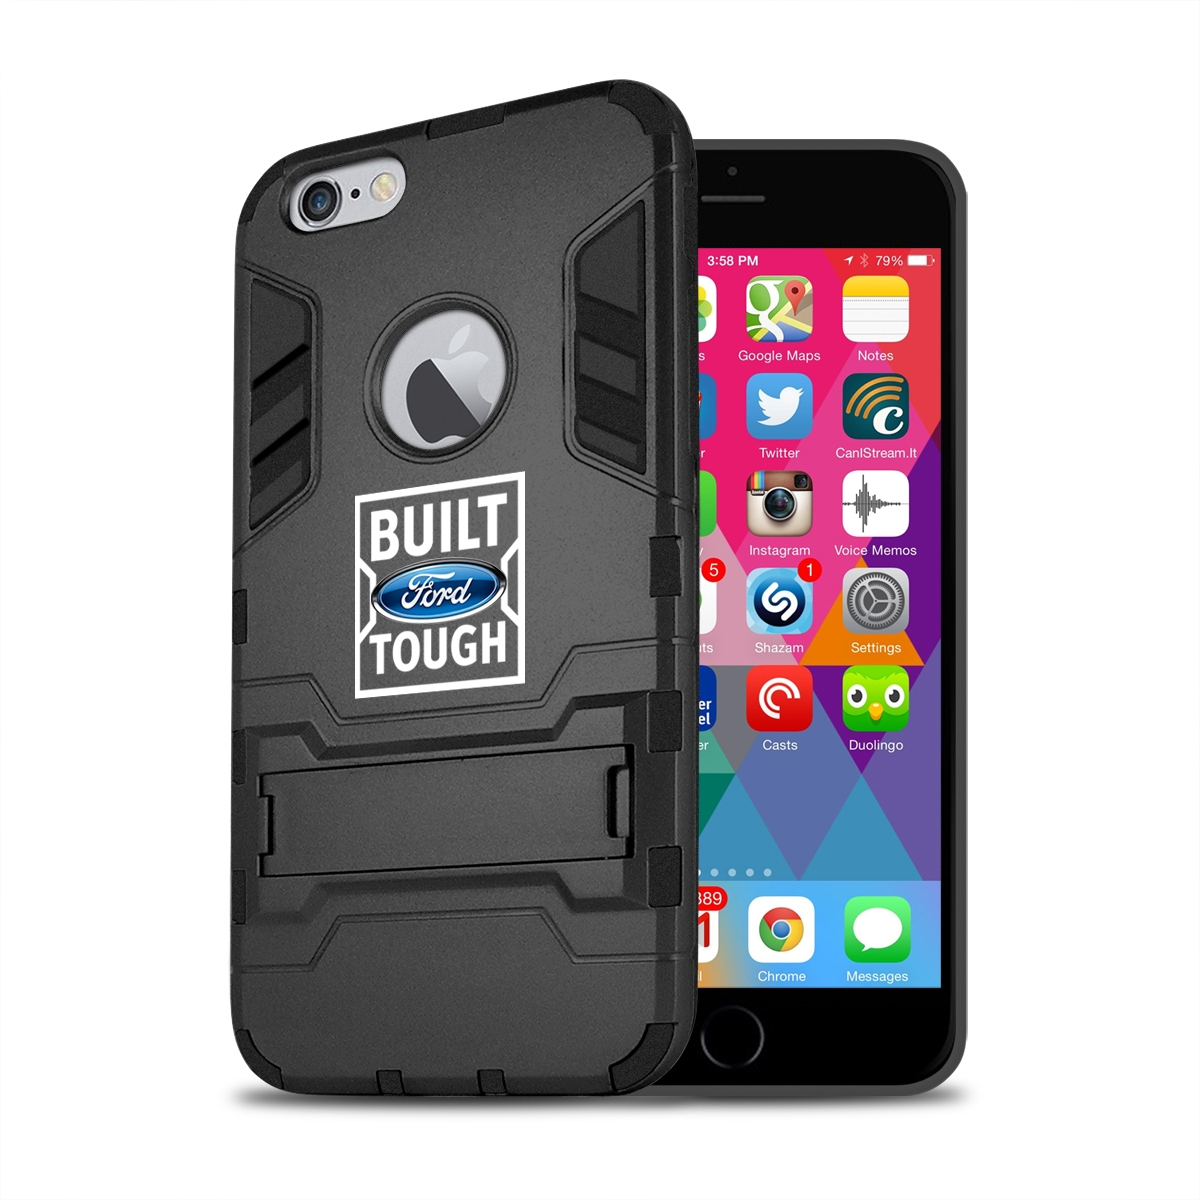 Ford Built Ford Tough iPhone 6 6s Shockproof TPU ABS Hybrid Black Phone Case